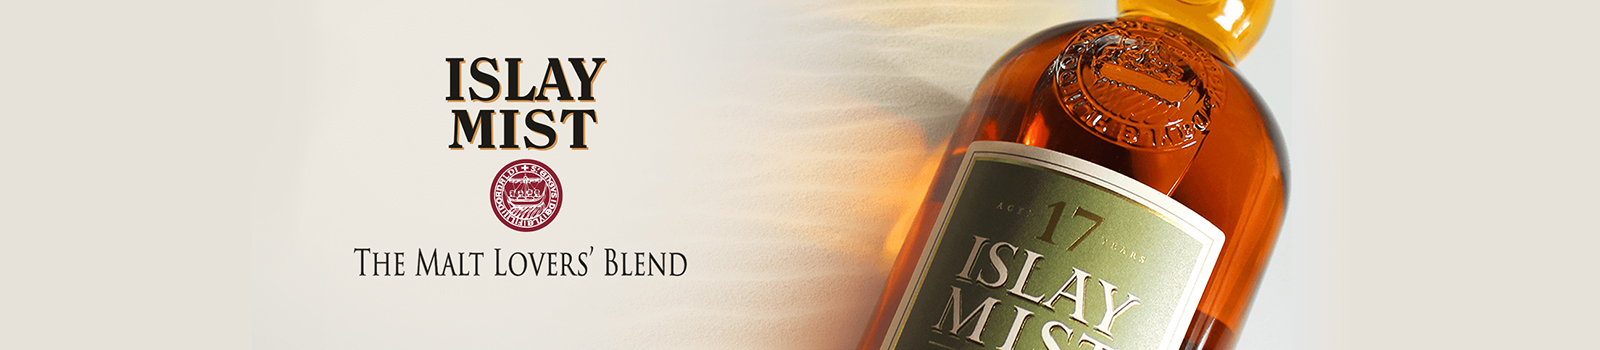 Islay Mist, MacDuff, Trajectory Beverage Partners